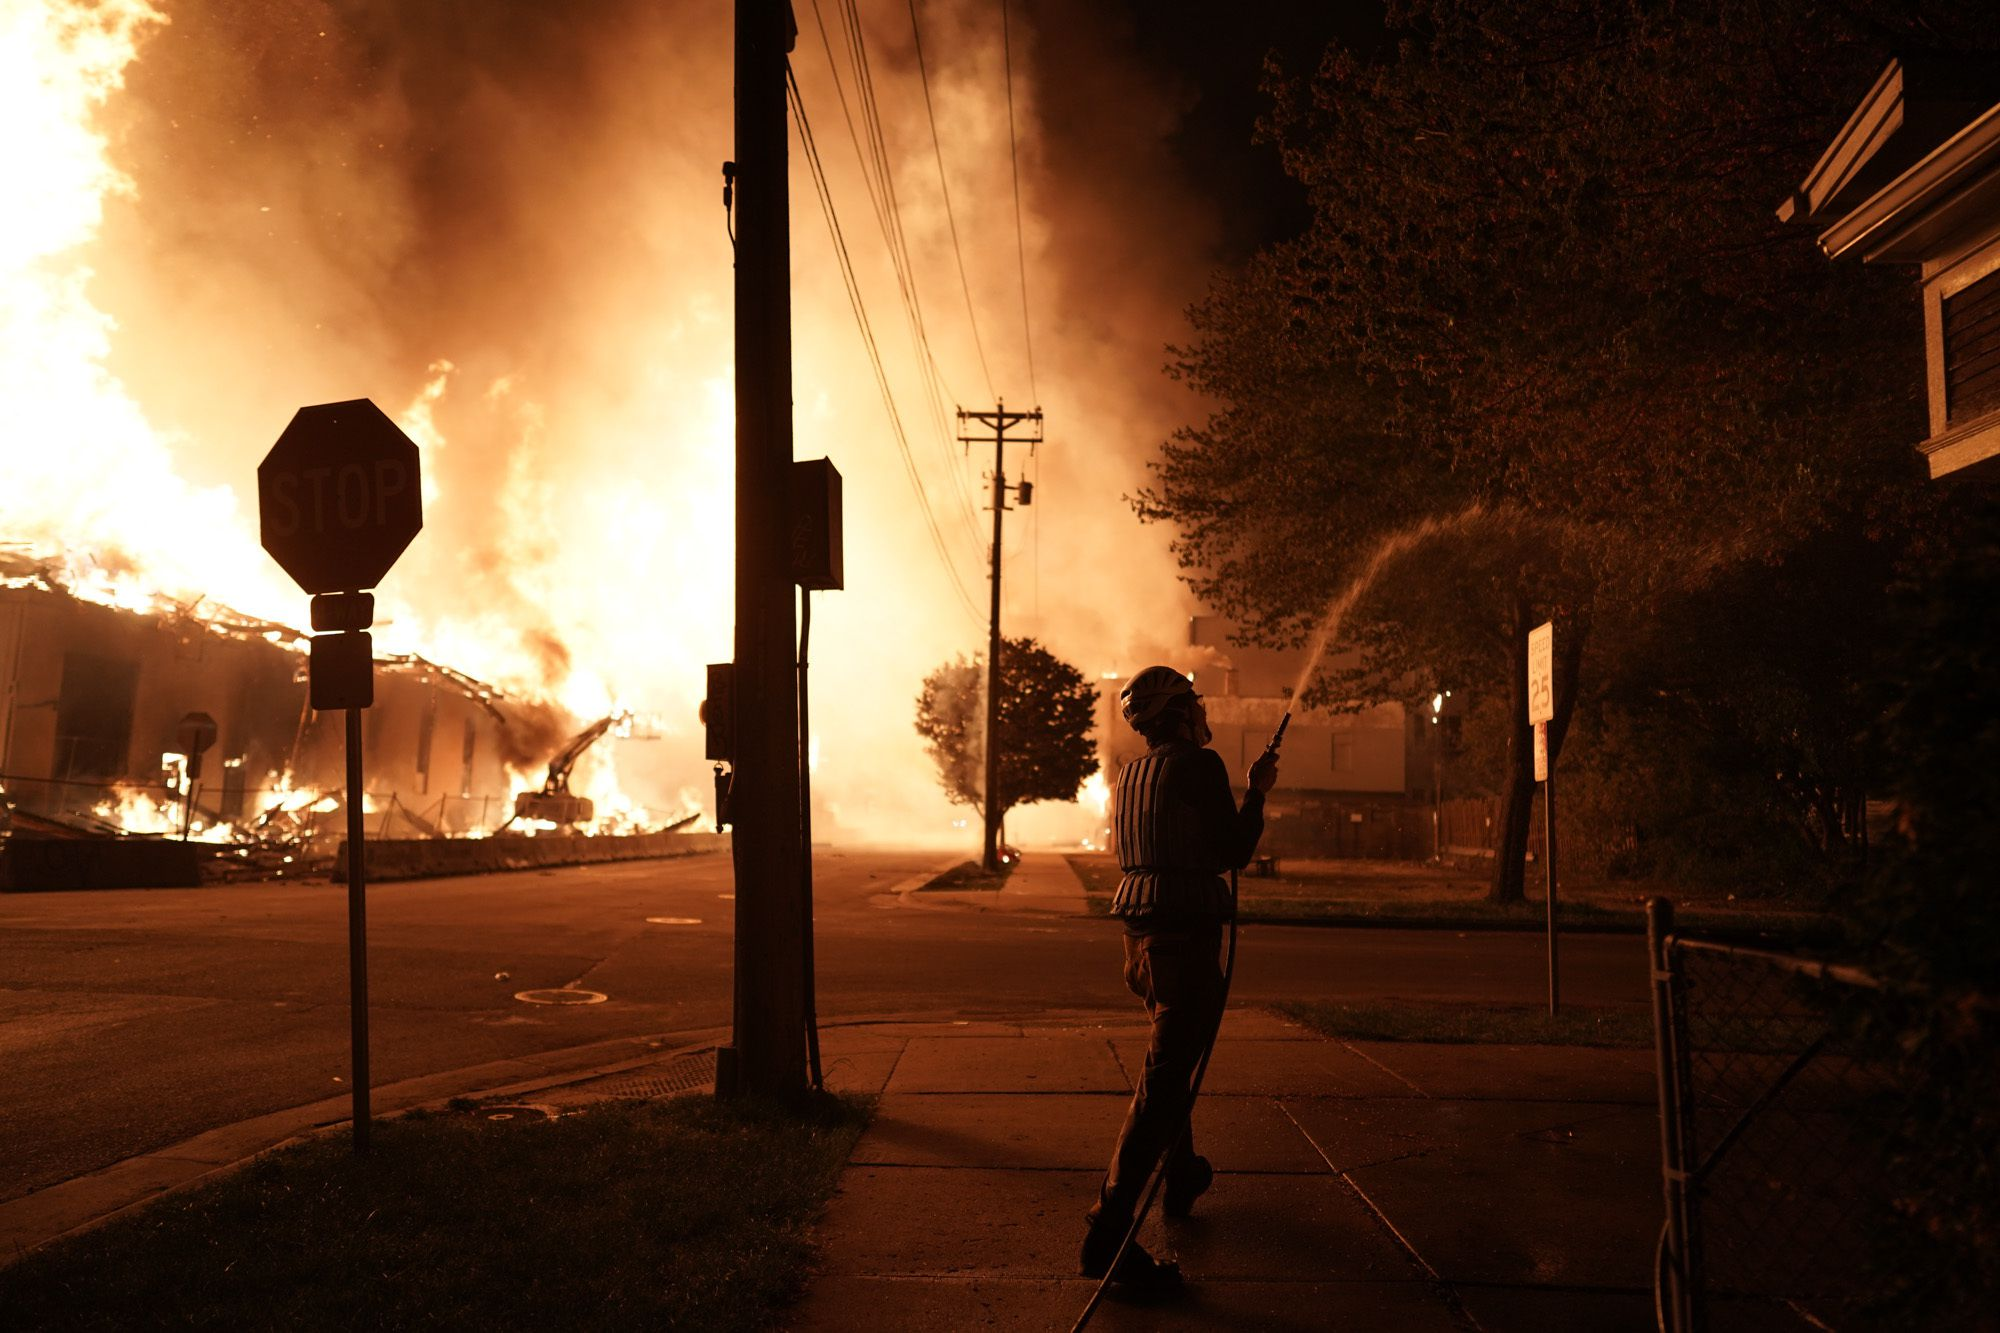 A massive fire engulfed a south Minneapolis building early Thursday as residents frantically tried to hose down nearby houses. Businesses were looted and in flames after protests turned violent.